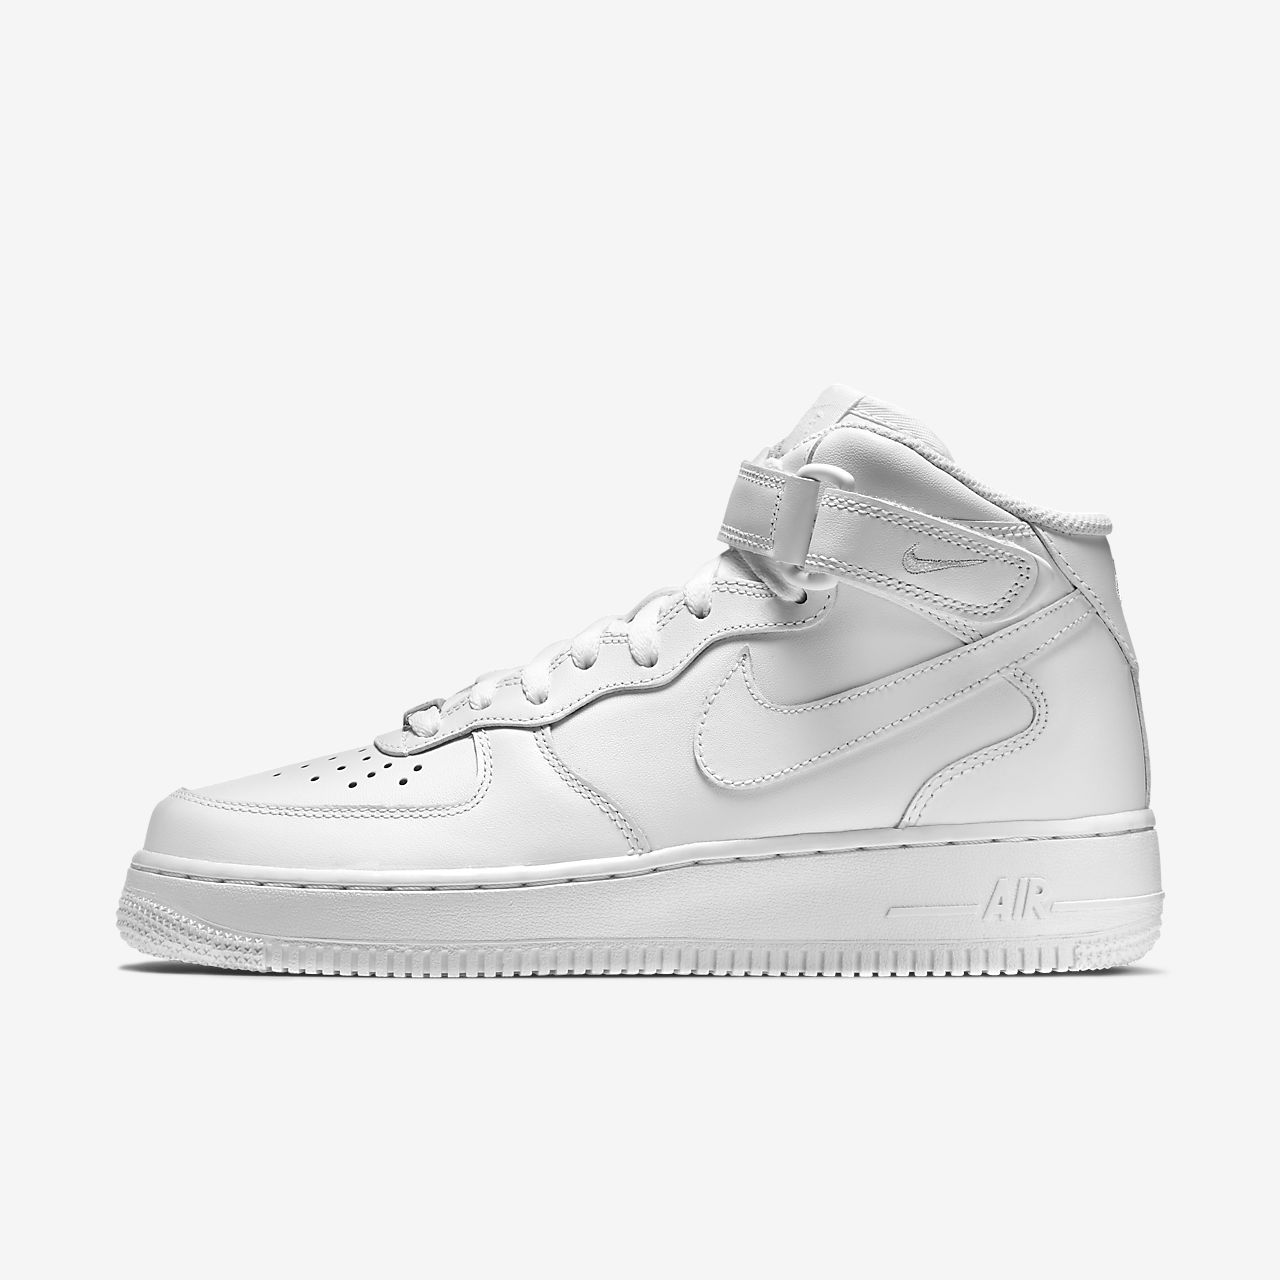 b70cd835c8f Nike Air Force One   Up to 60% off - Buy Nike Shoes at Suzukinozomu.com